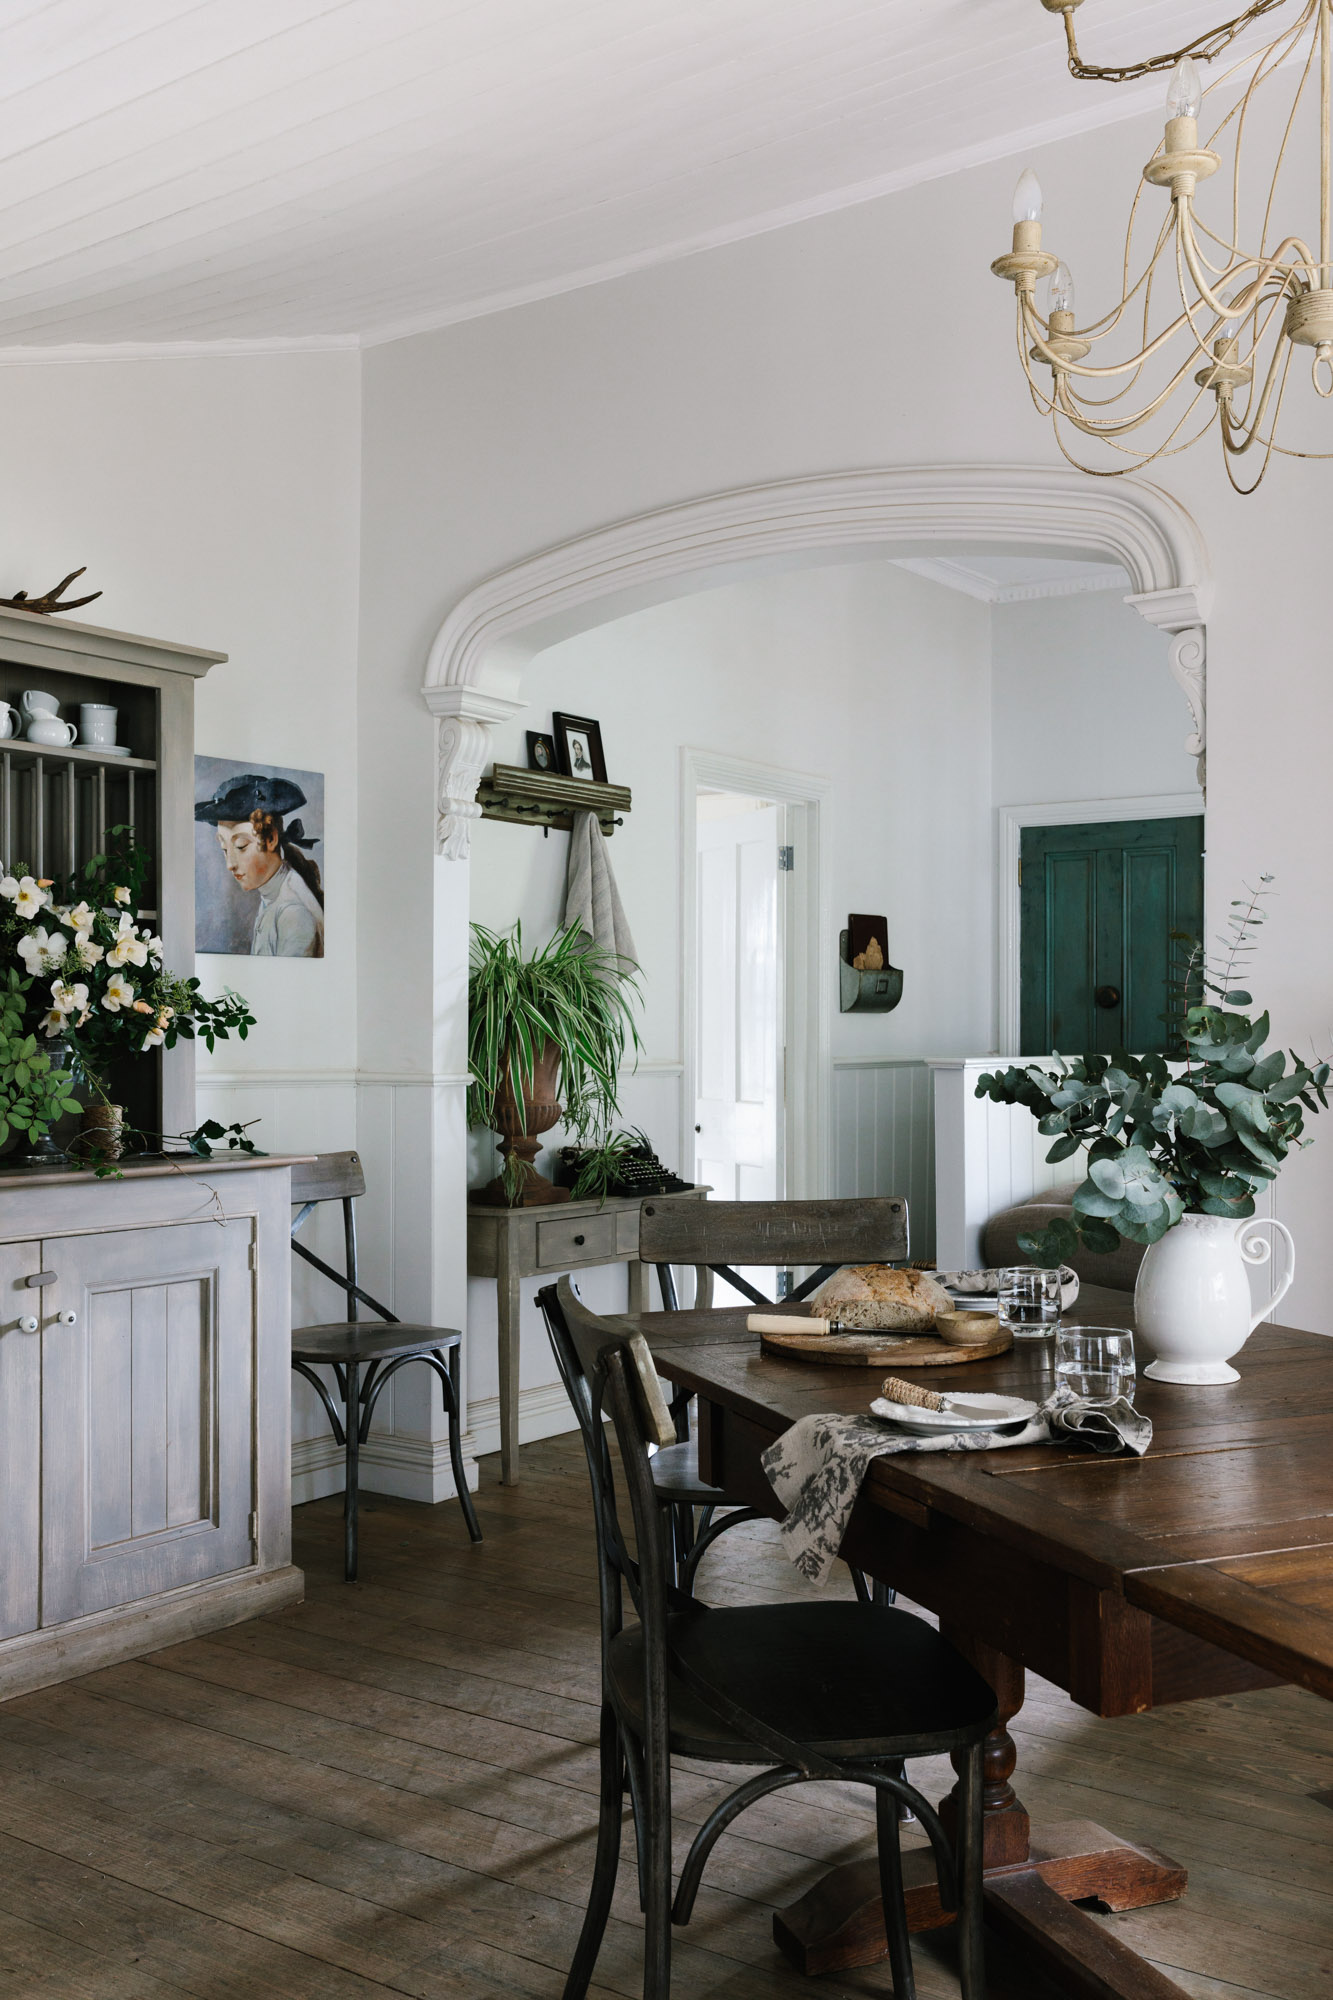 Marnie+Hawson,+Melbourne+purpose-driven+photographer+for+Acre+of+Roses,+Trentham.+A+sustainable+flower+farm+and+luxury+accommodation..jpg